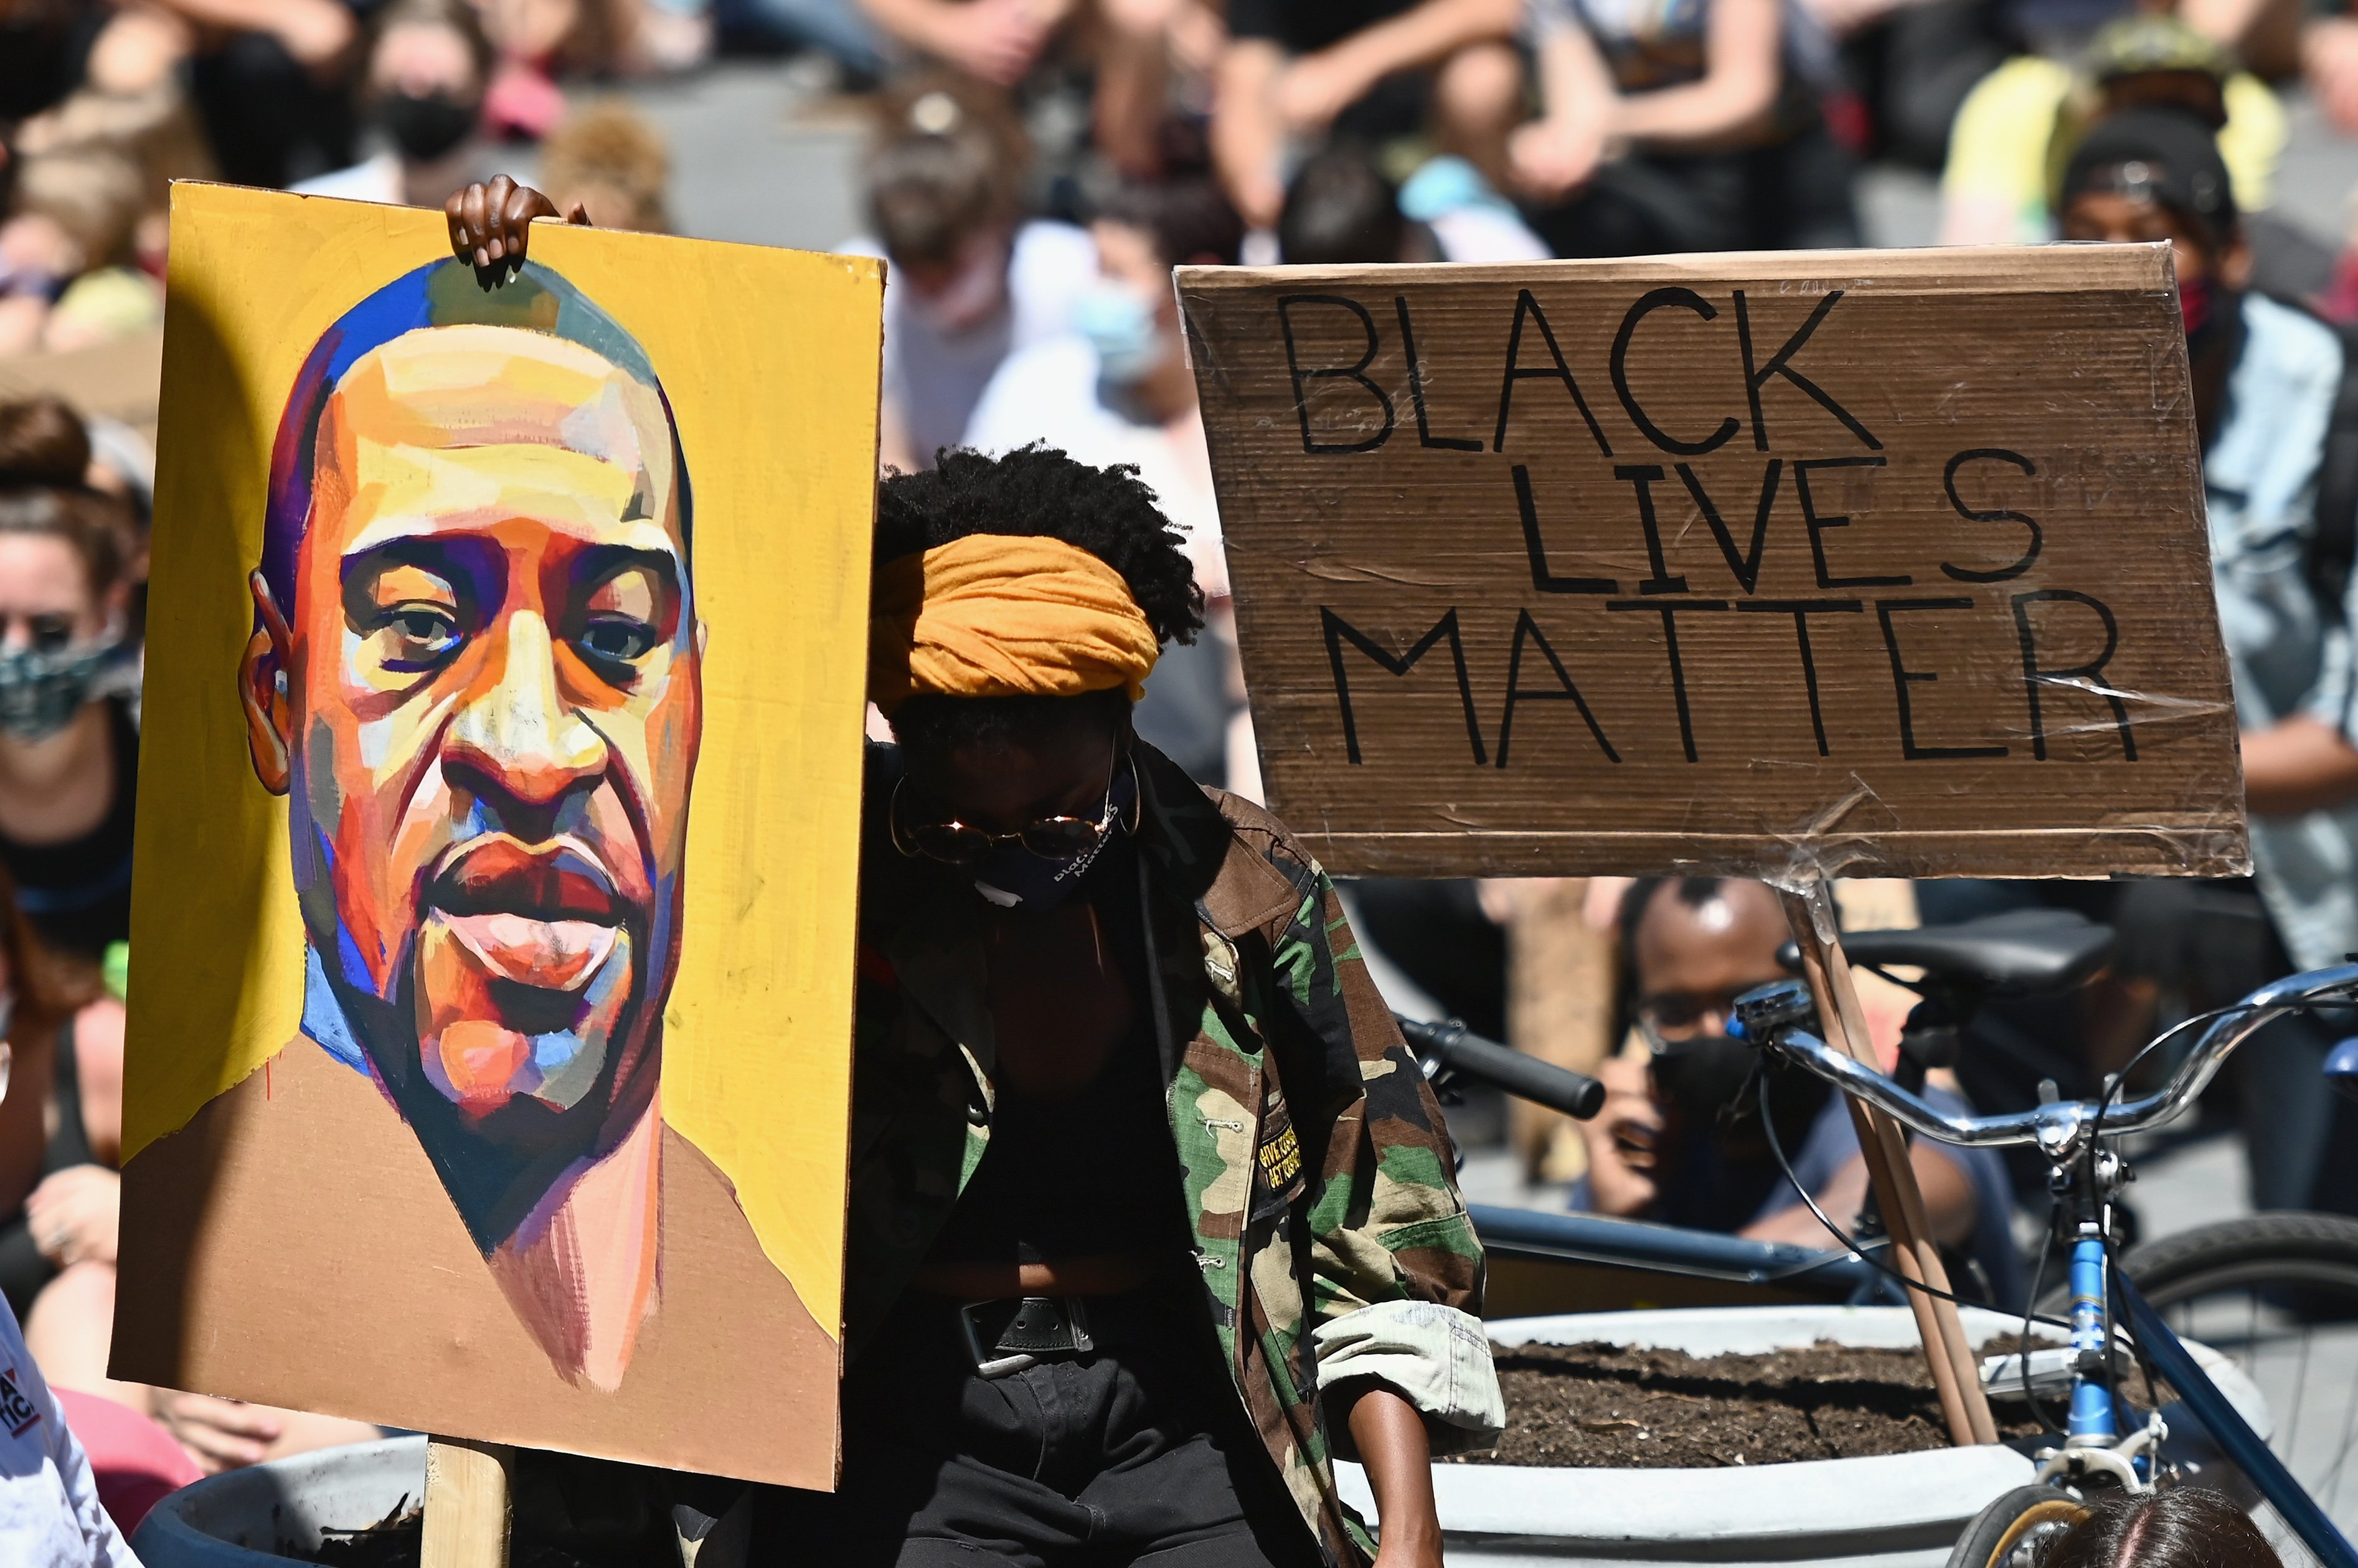 """TOPSHOT - Protesters hold up signs during a """"Black Lives Matter"""" protest in front of Borough Hall on June 8, 2020 in New York City. - On May 25, 2020, Floyd, a 46-year-old black man suspected of passing a counterfeit $20 bill, died in Minneapolis after Derek Chauvin, a white police officer, pressed his knee to Floyd's neck for almost nine minutes. (Photo by ANGELA WEISS/AFP via Getty Images)"""